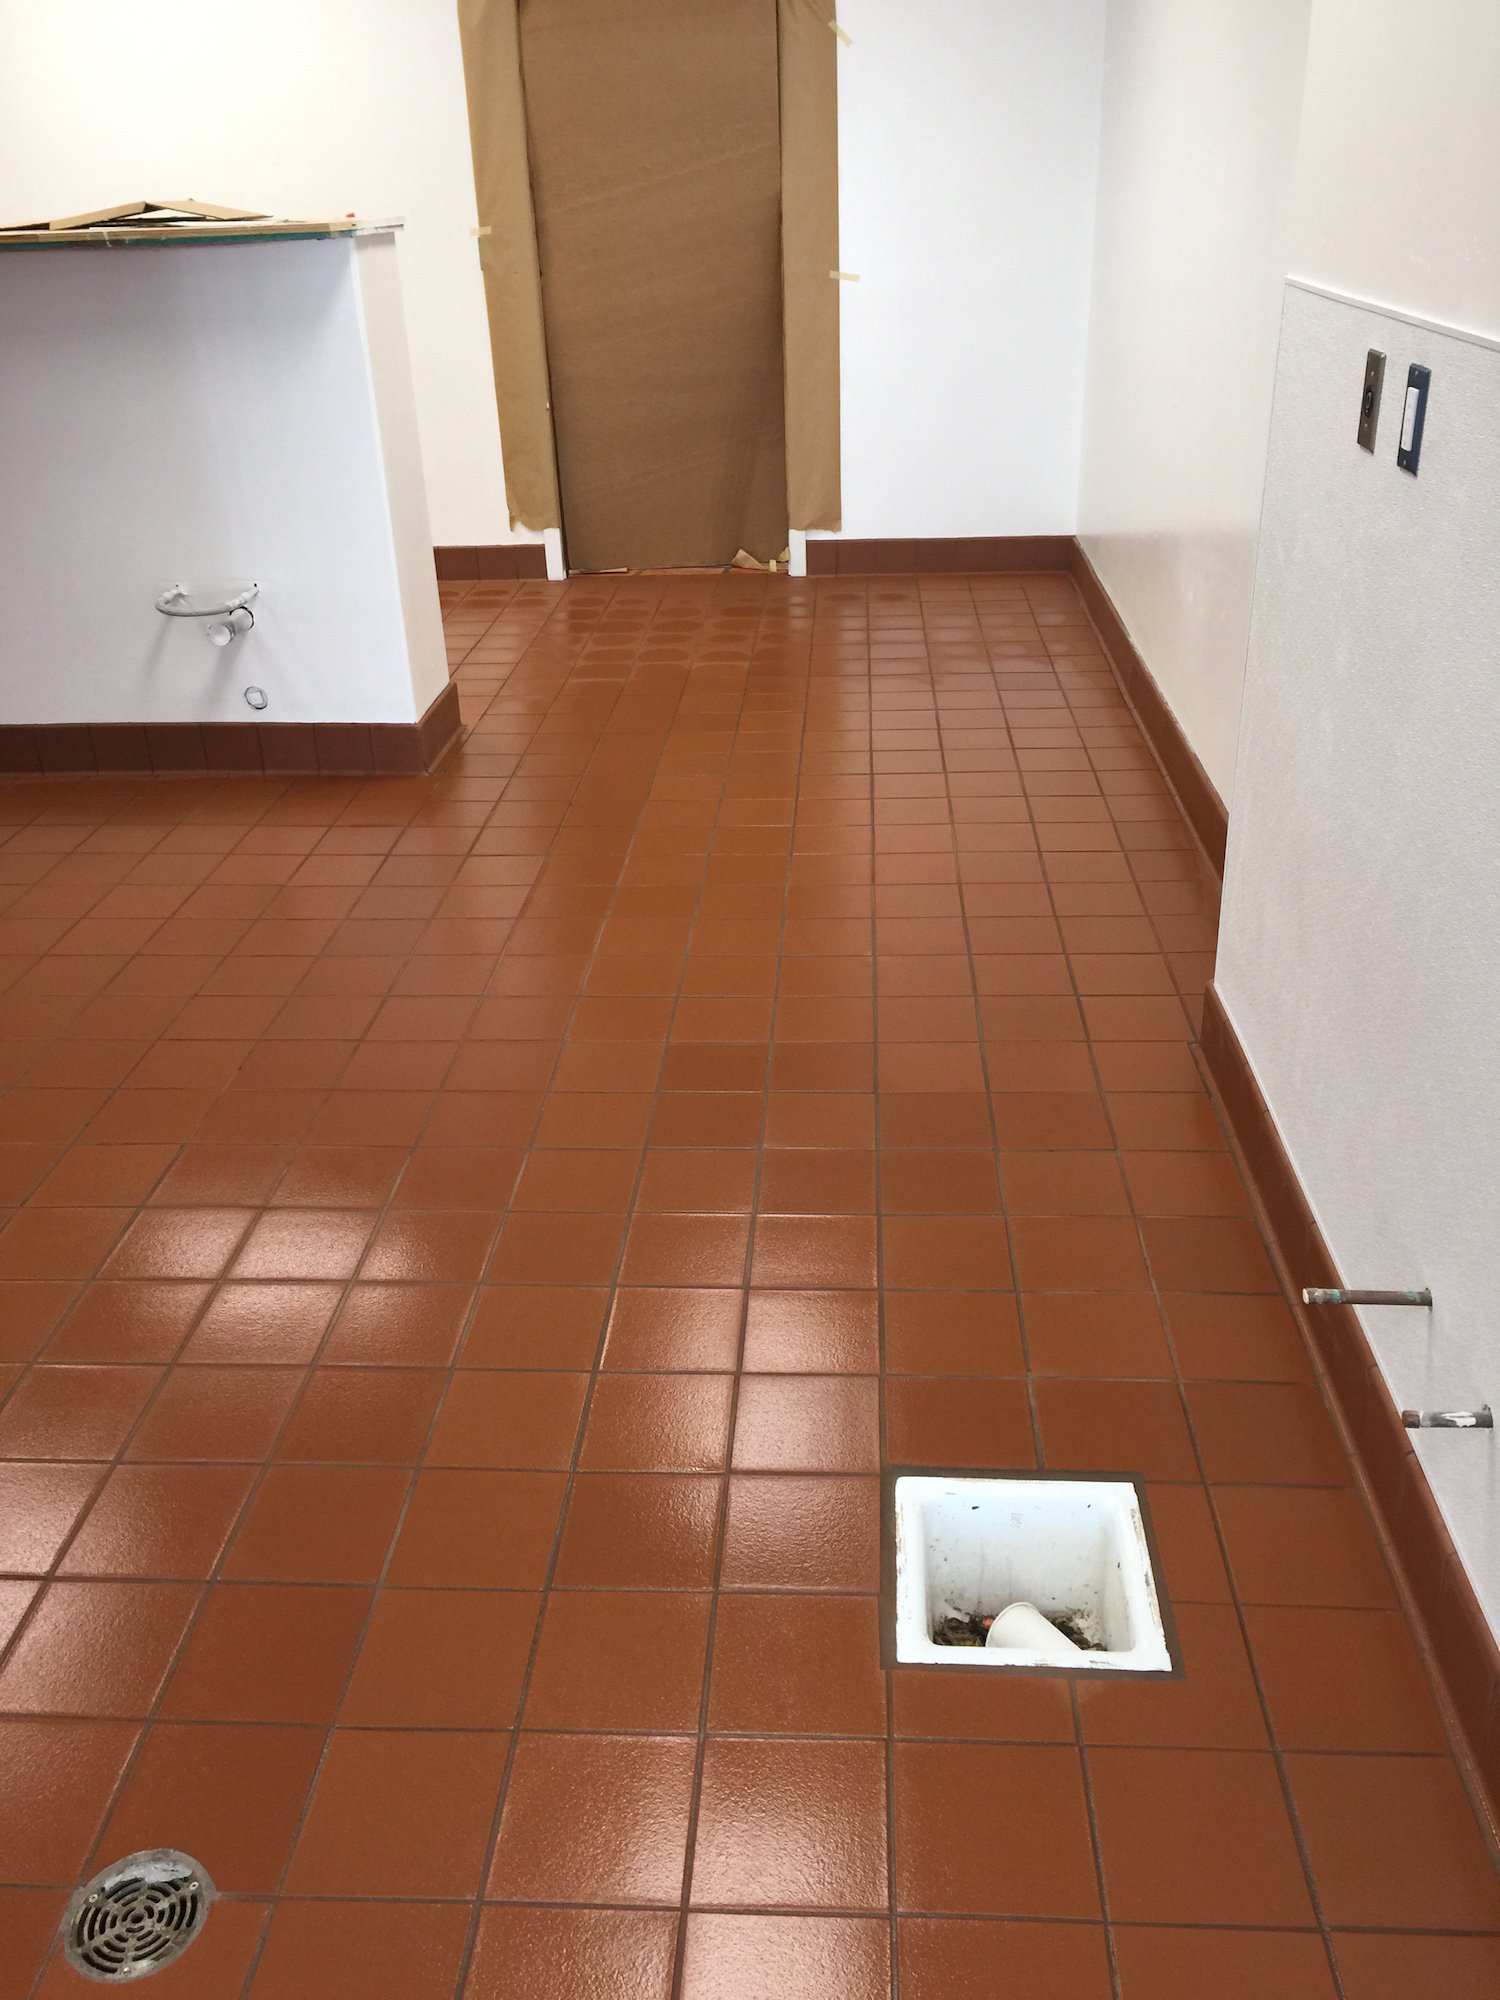 Tile Floor Cleaning Sacramento After